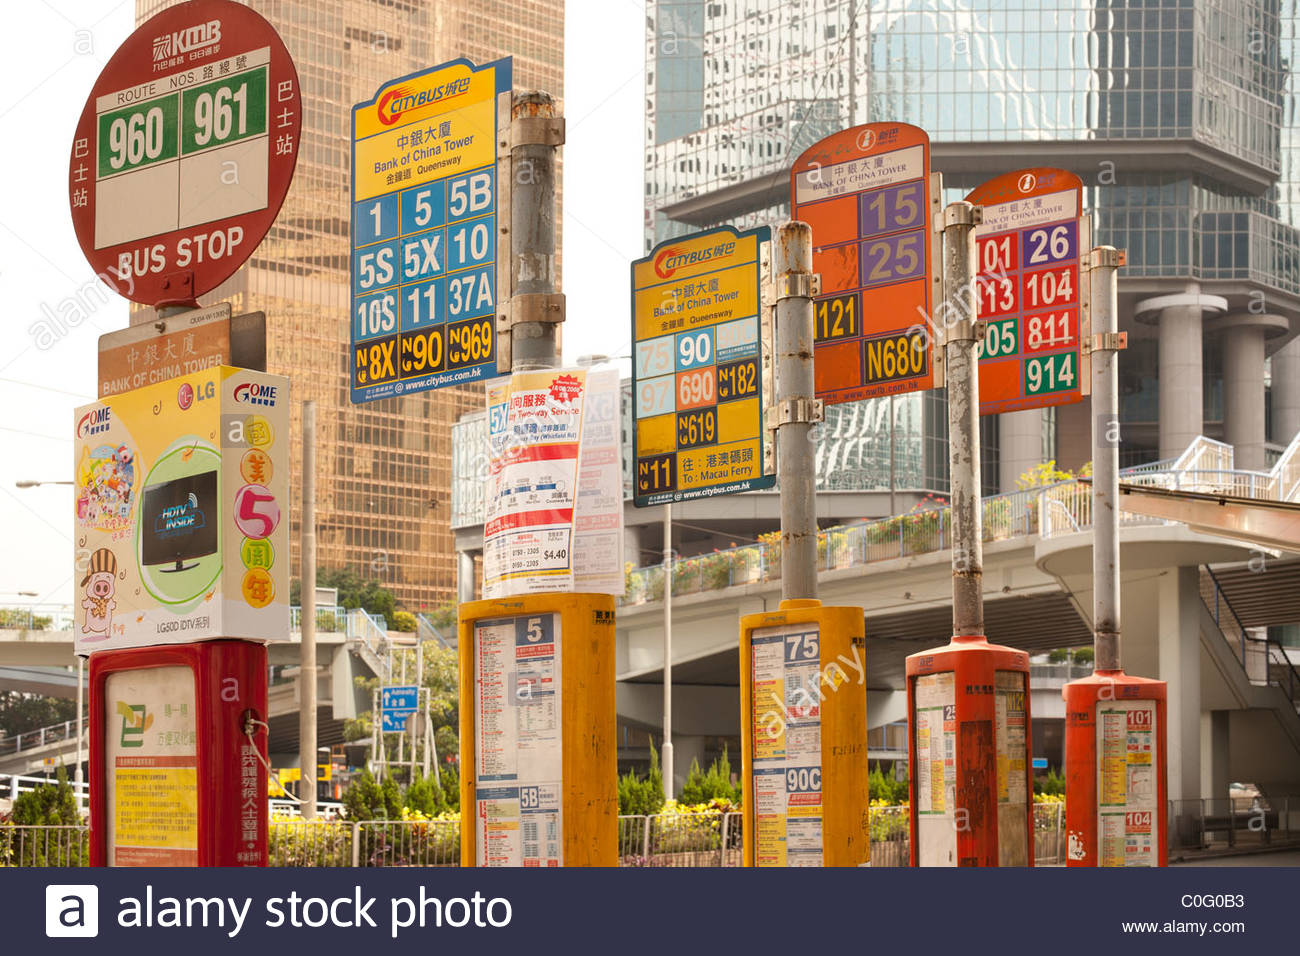 Signs for routes at a bus stop in Central Hong Kong, China - Stock Image